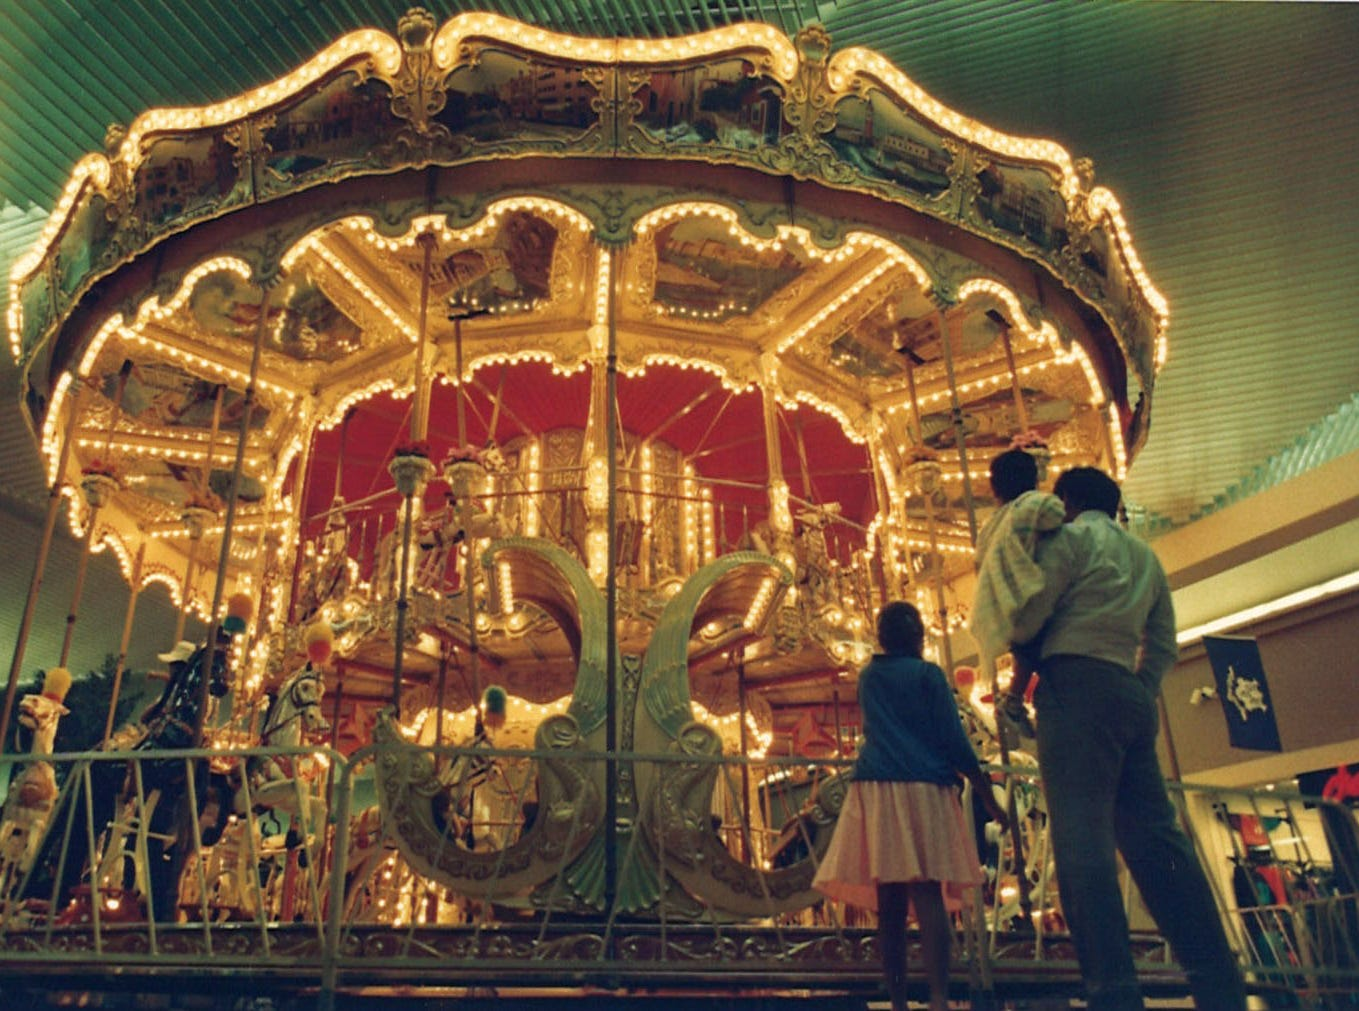 Carousel Carnaval became a permanent fixture inside Padre Staples Mall in 1988. The carousel was an authentic replica of Phillip Scheider's first double-decker carousel built in 1898. The replica had a grand opening in the mall on Saturday, Oct. 29, 1988.